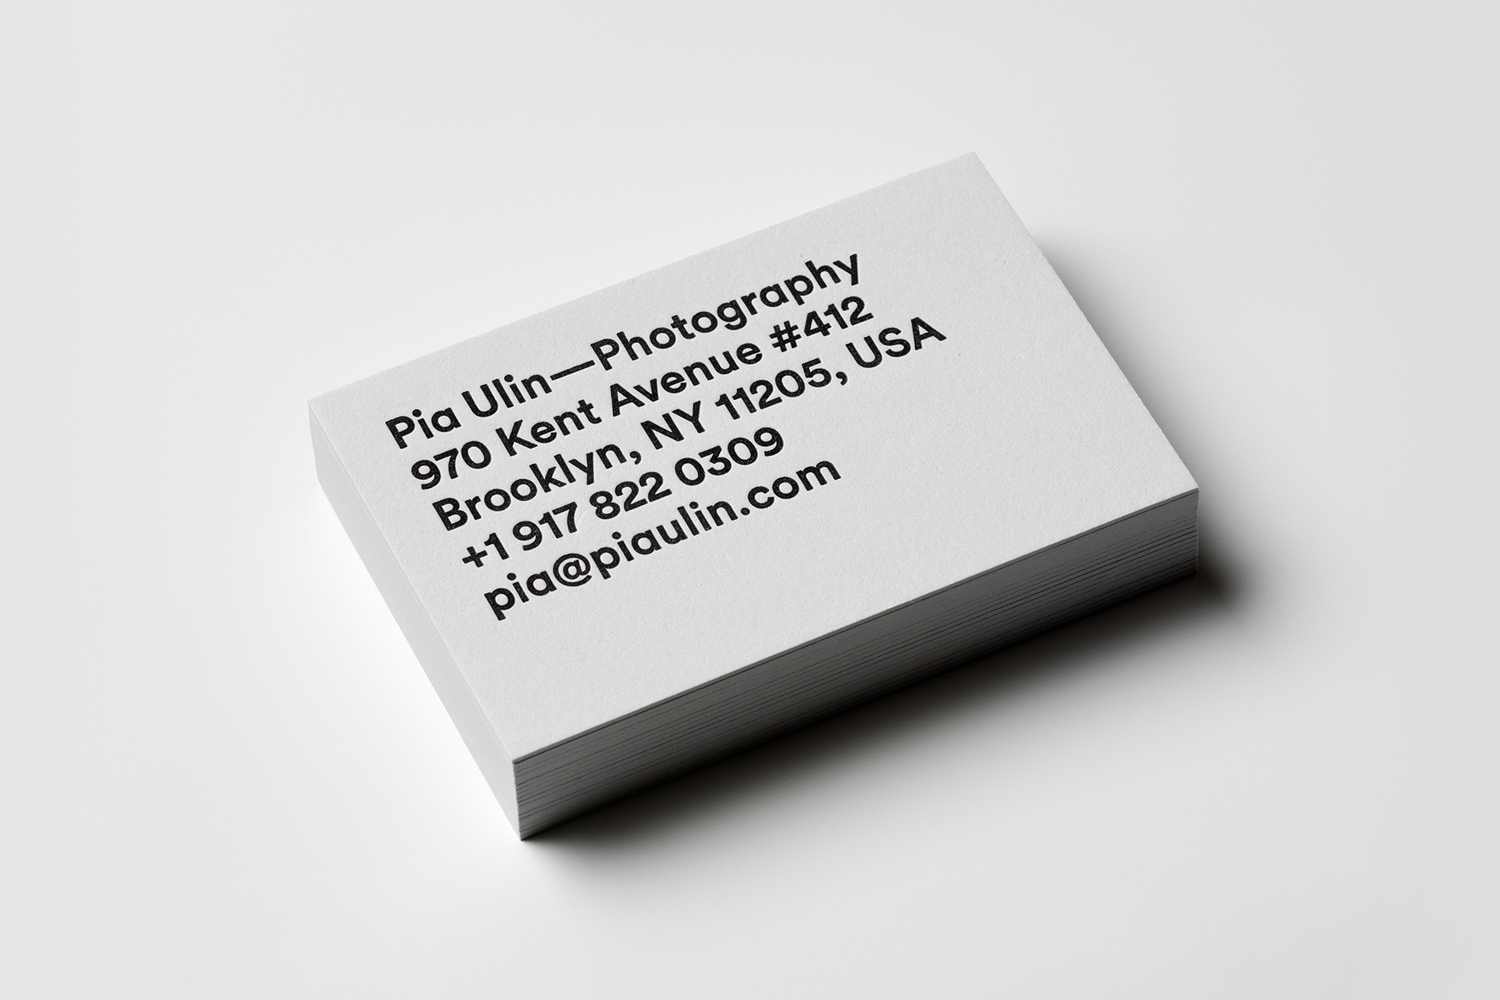 Grey board and black block foiled business card for Pia Ulin Photography designed by The Studio